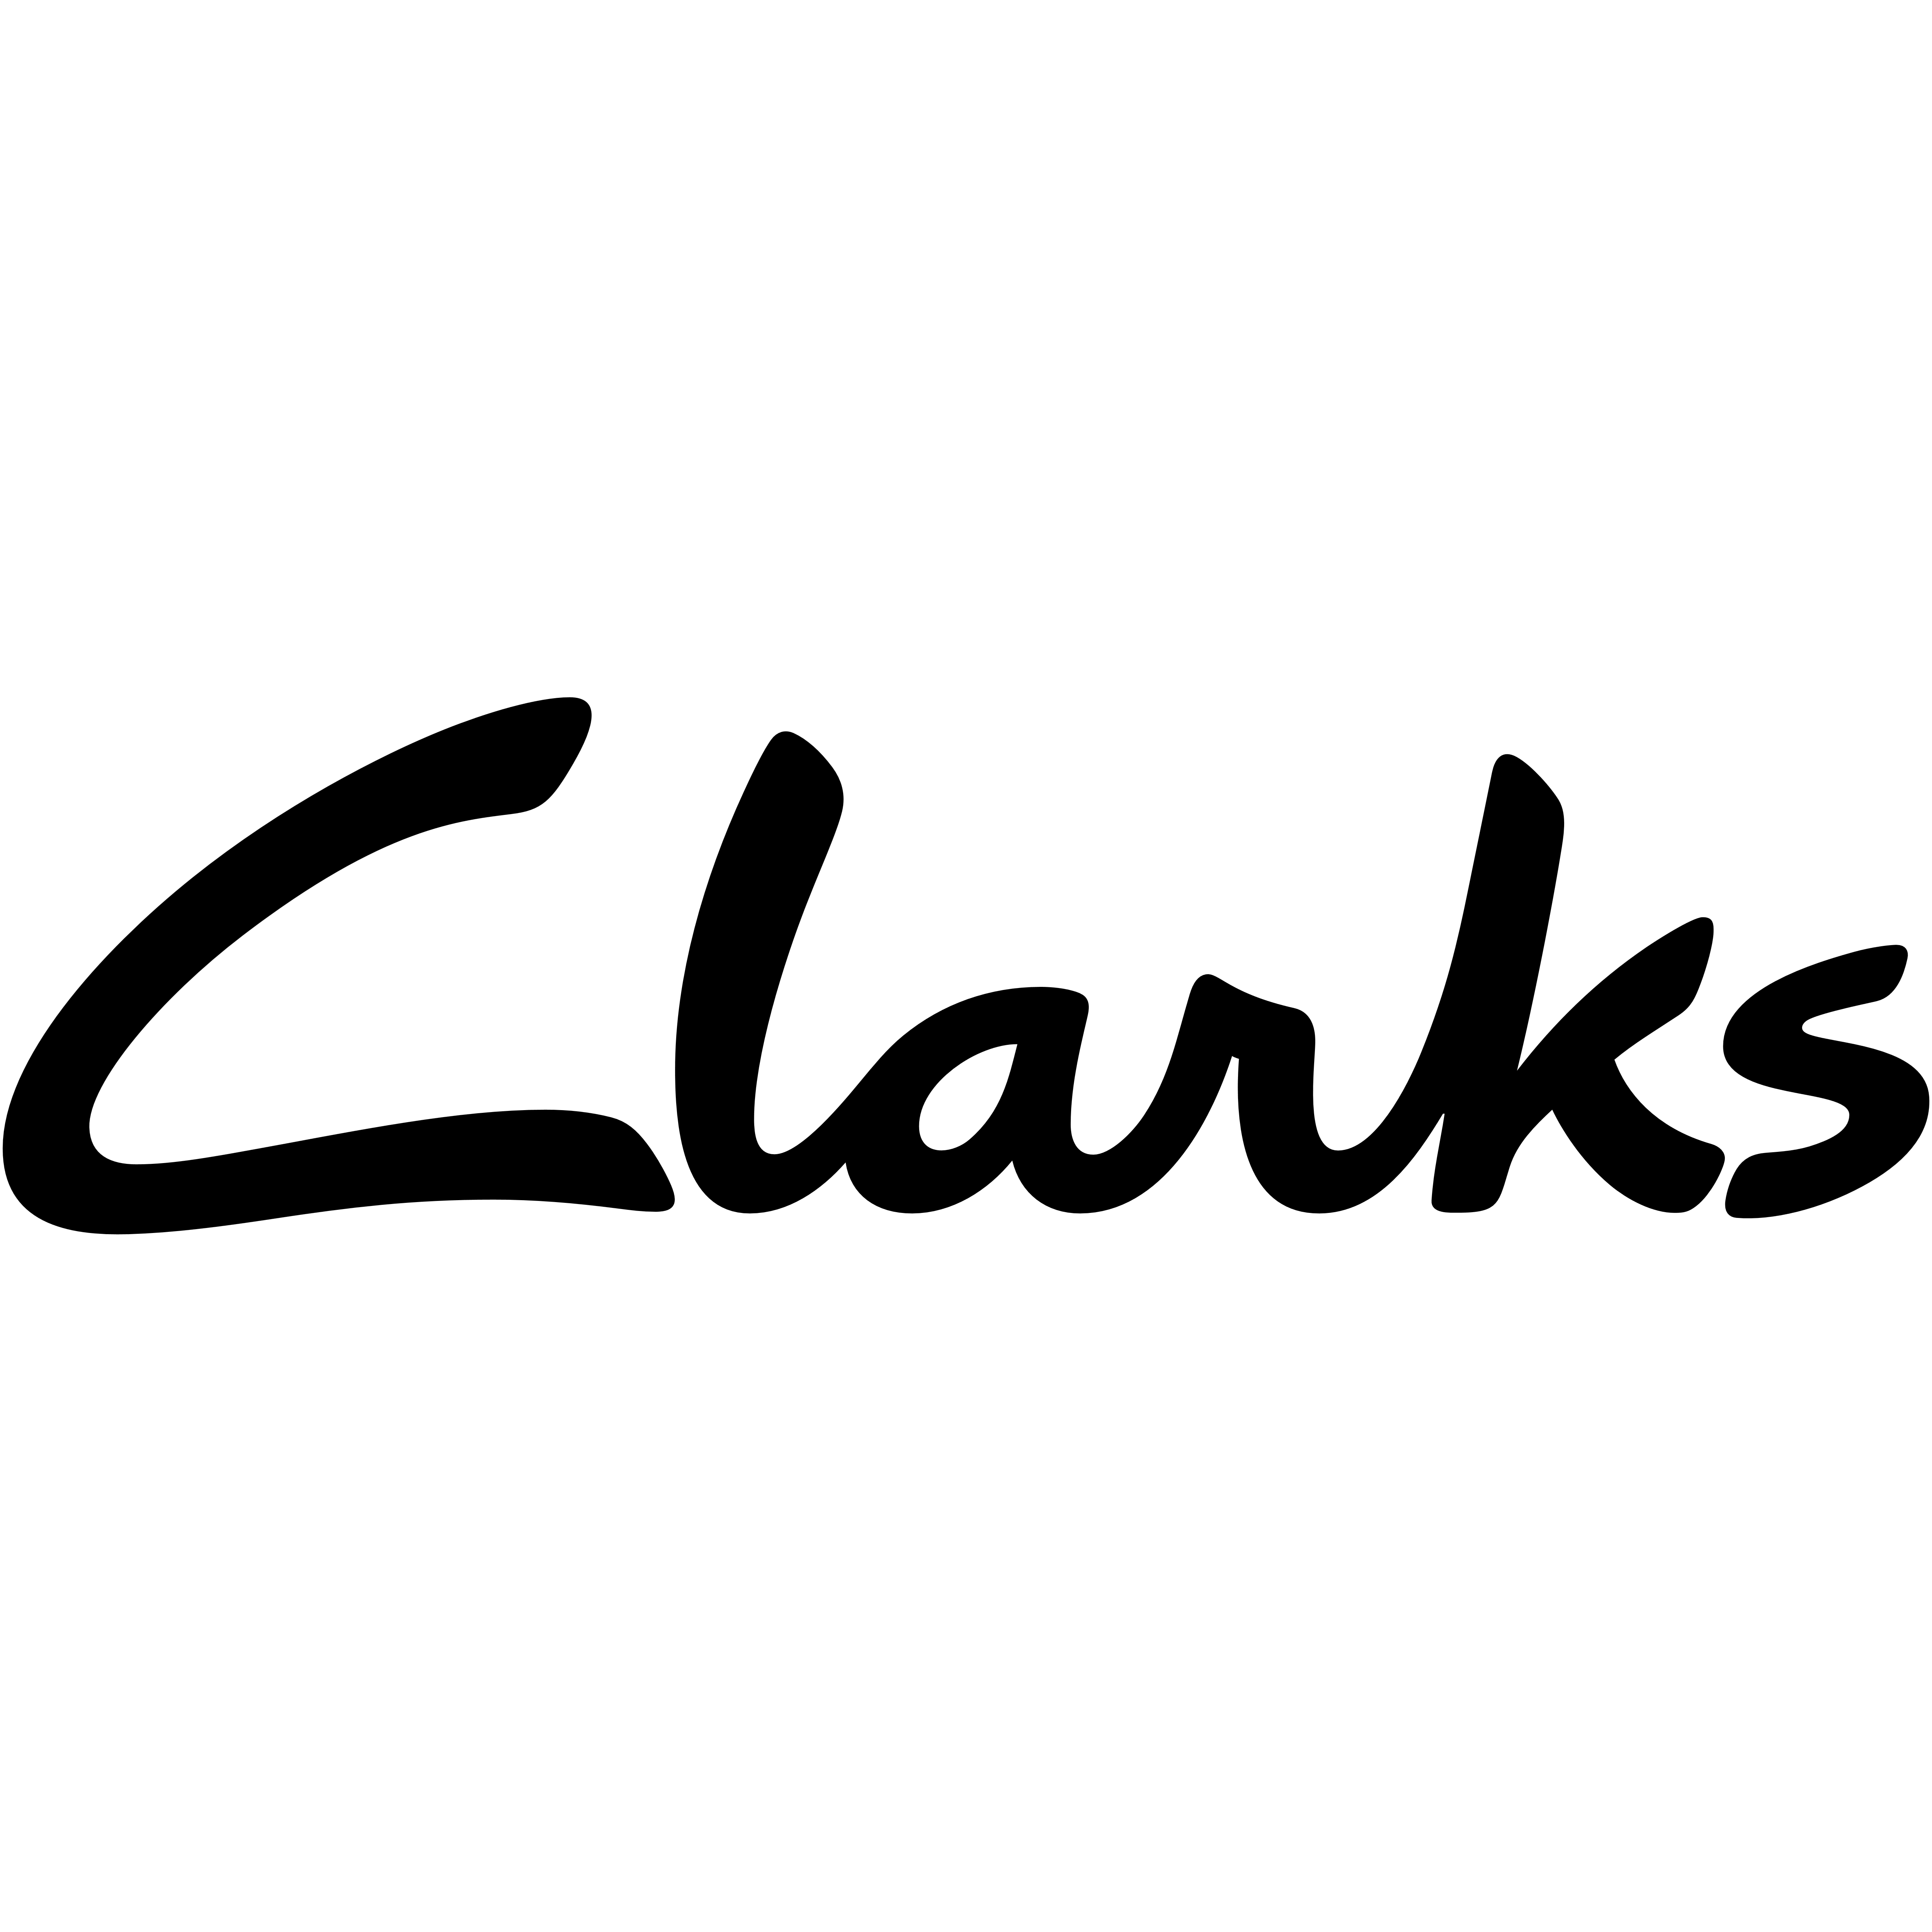 Clarks Shoes Franchise